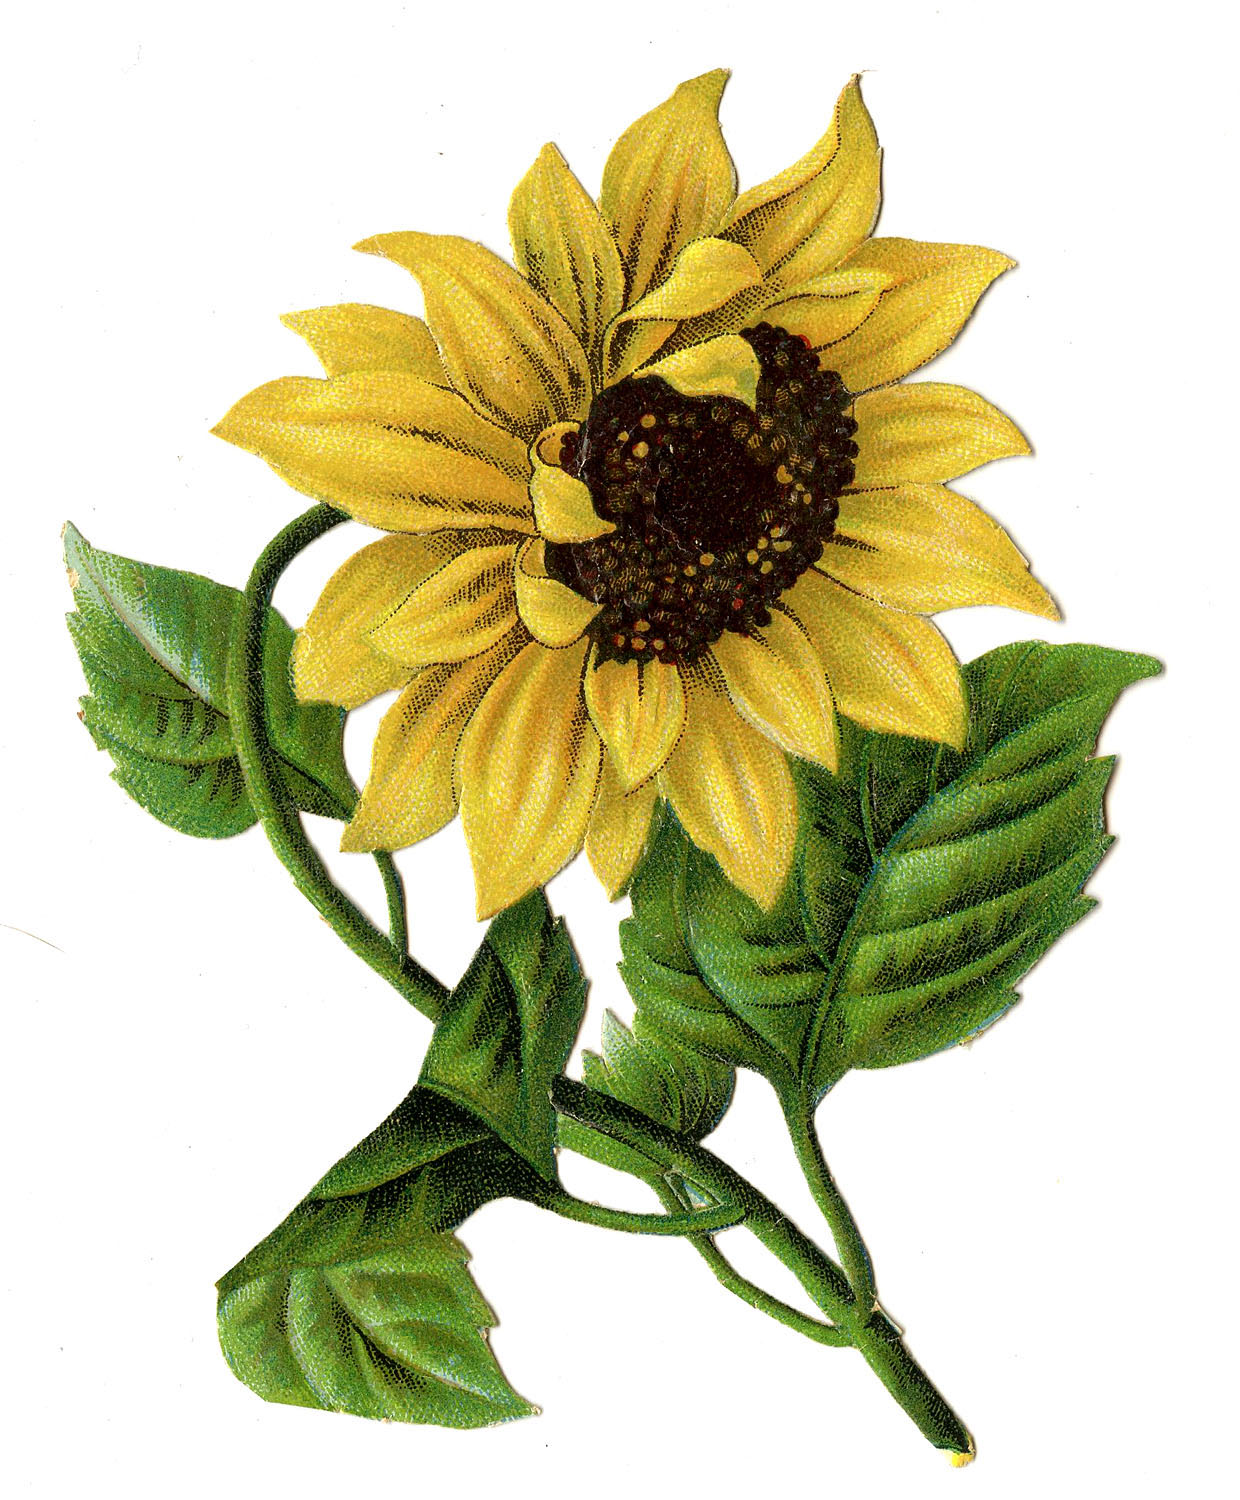 8 Sunflower Images - Beautiful! - The Graphics Fairy